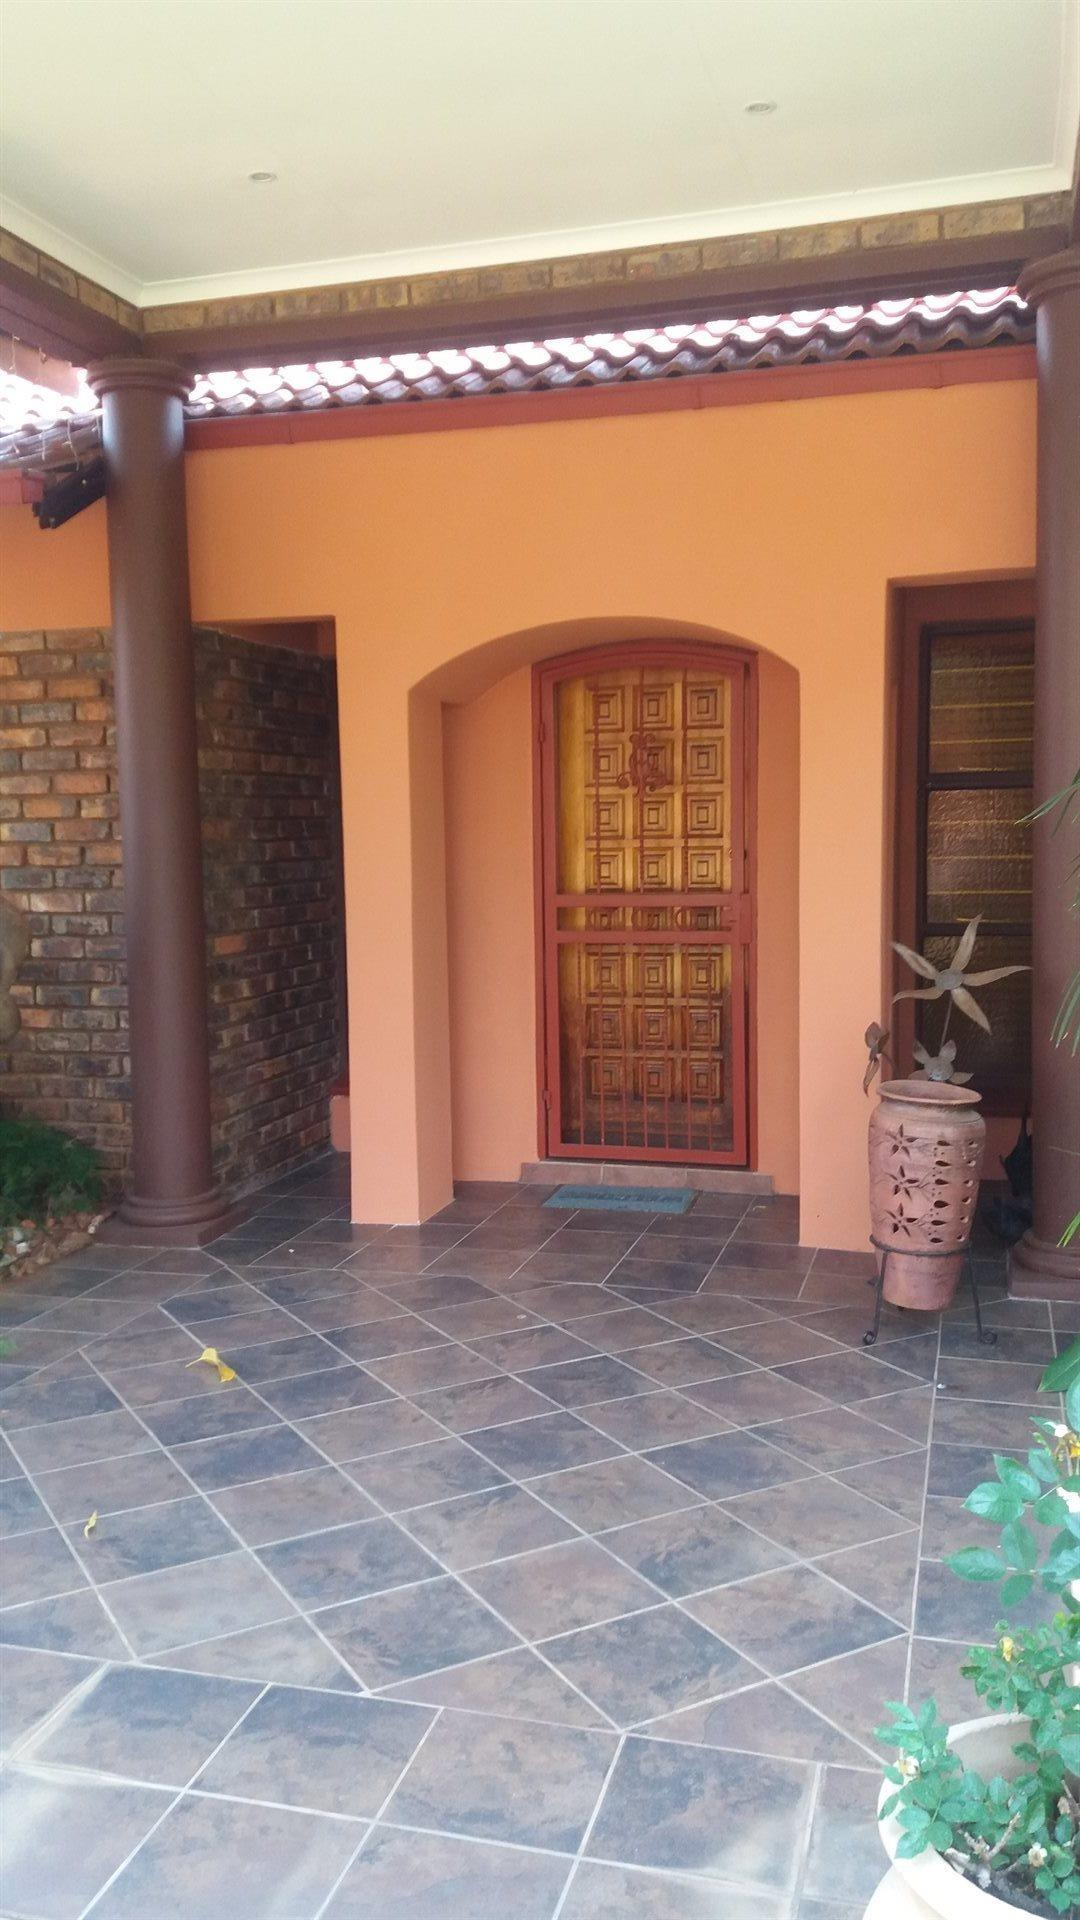 Theresapark property for sale. Ref No: 13566719. Picture no 3